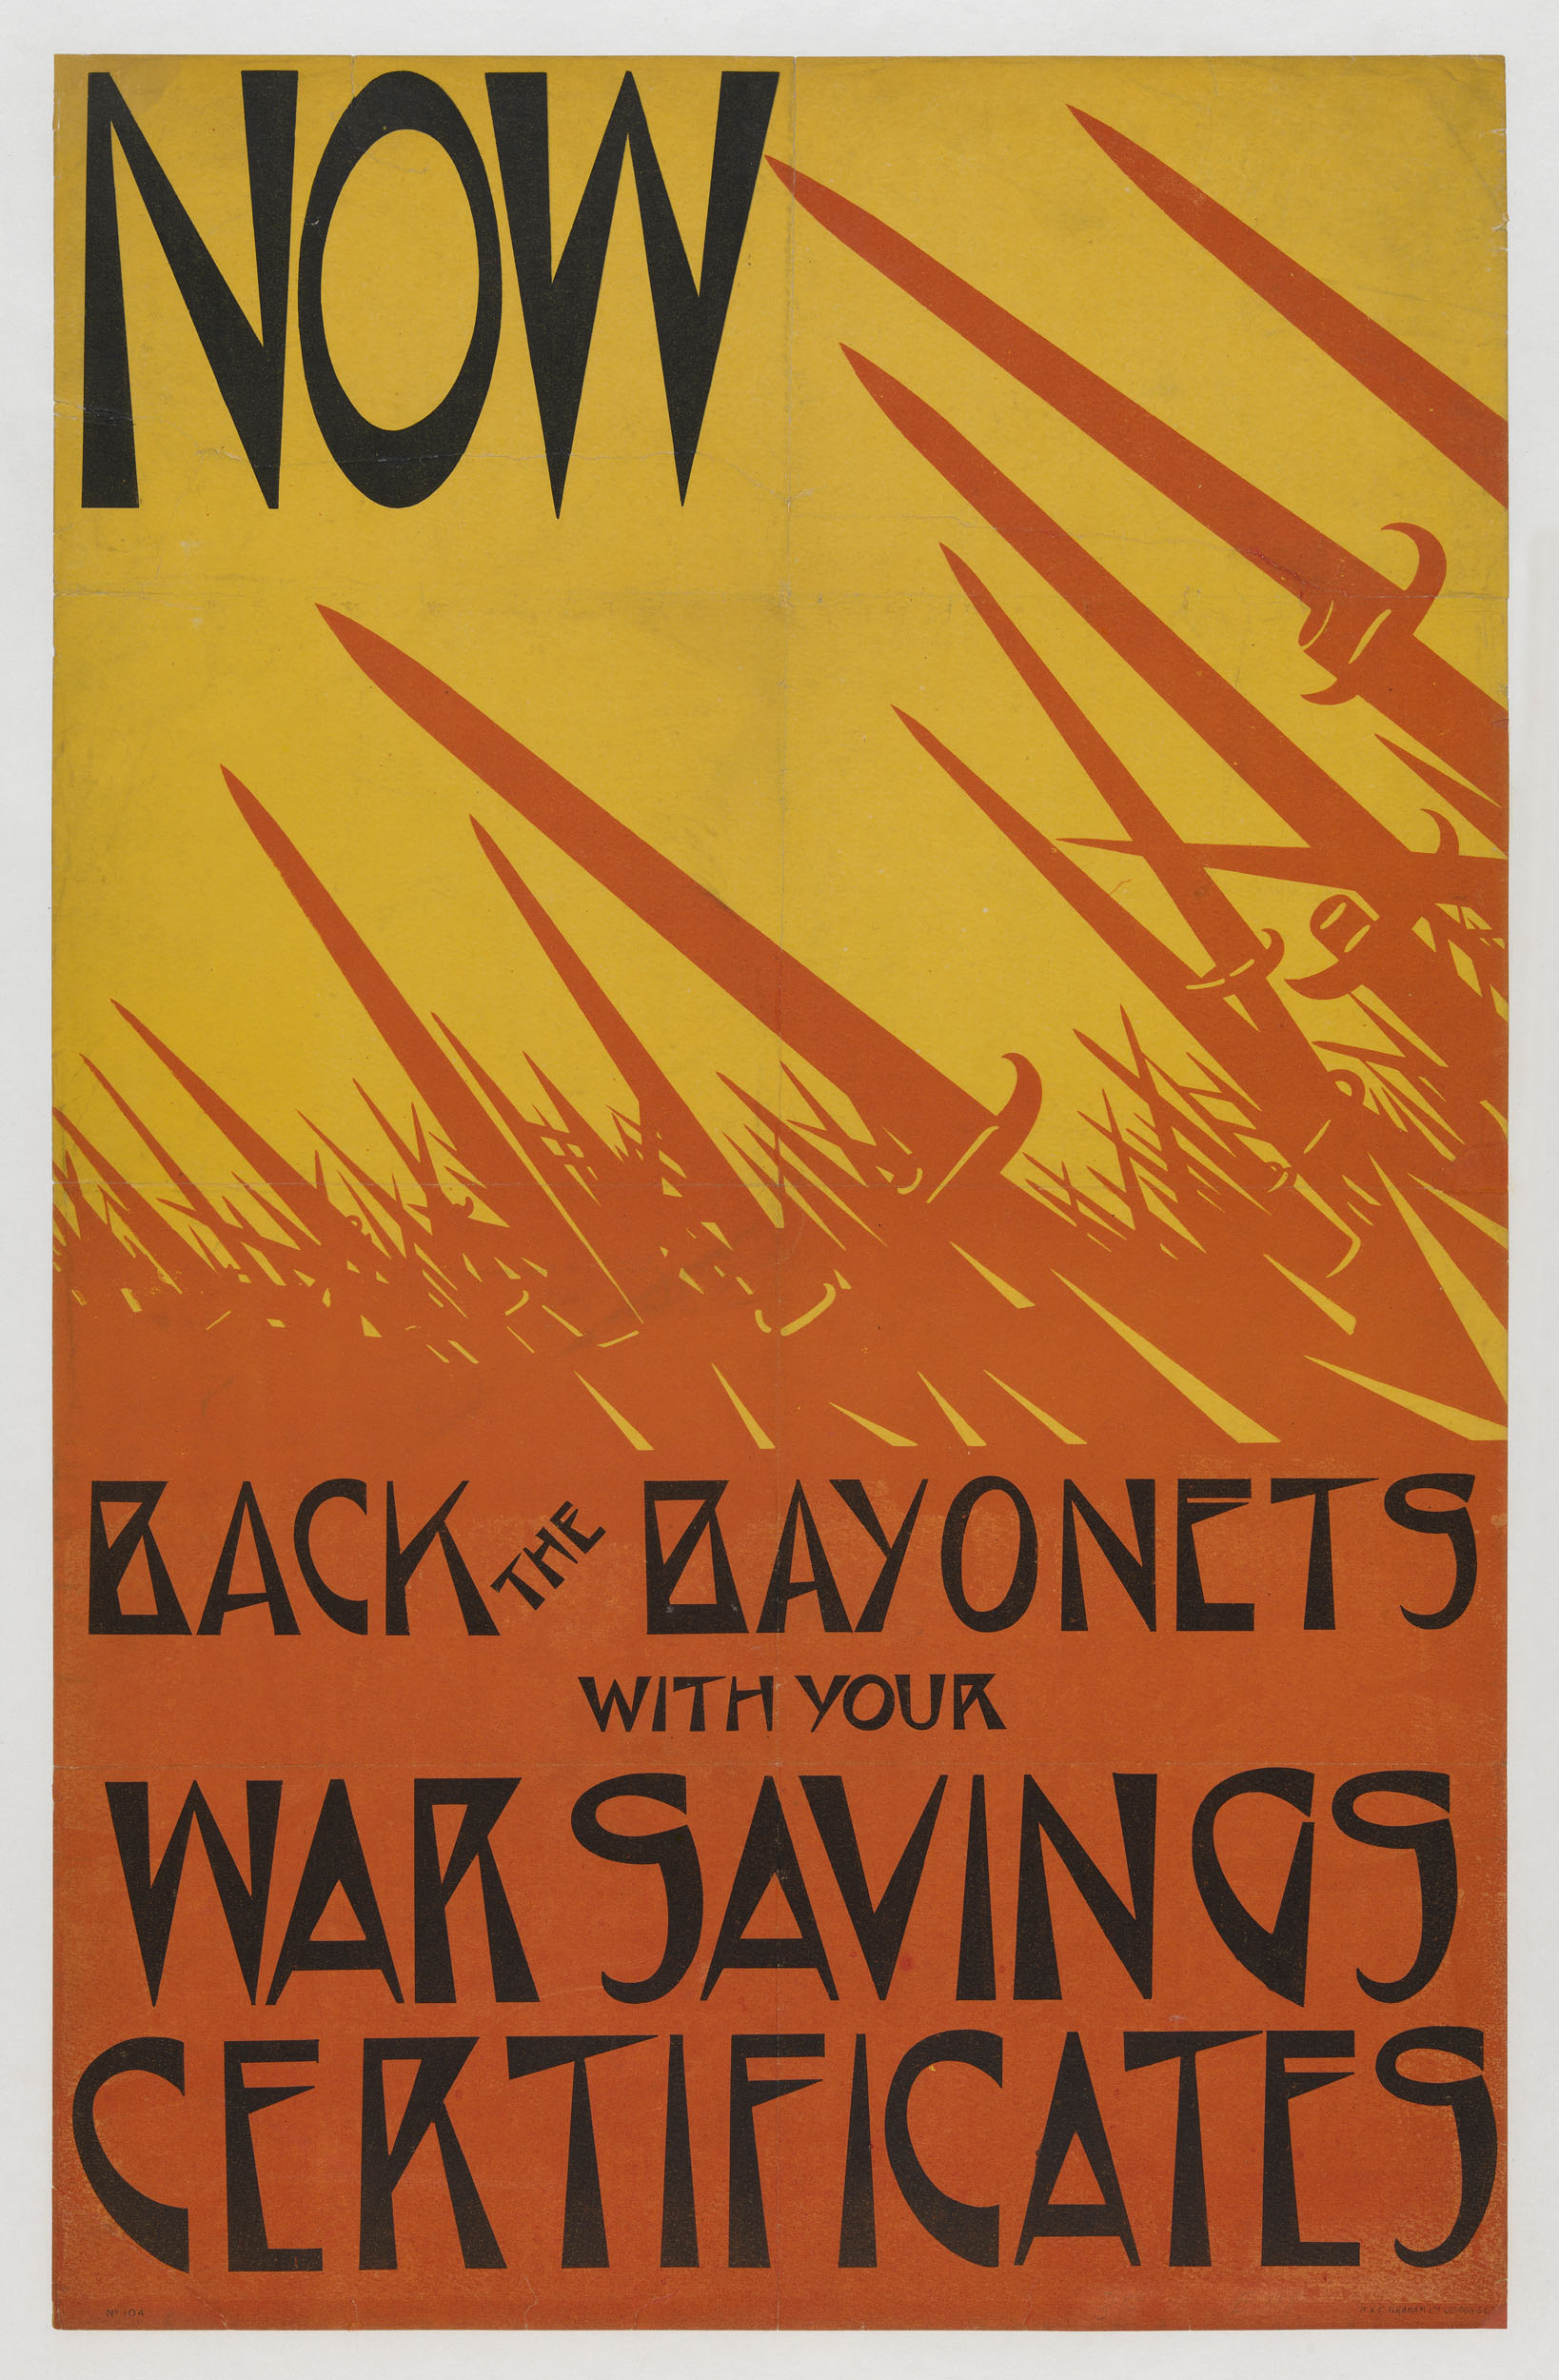 Now Back the Bayonets